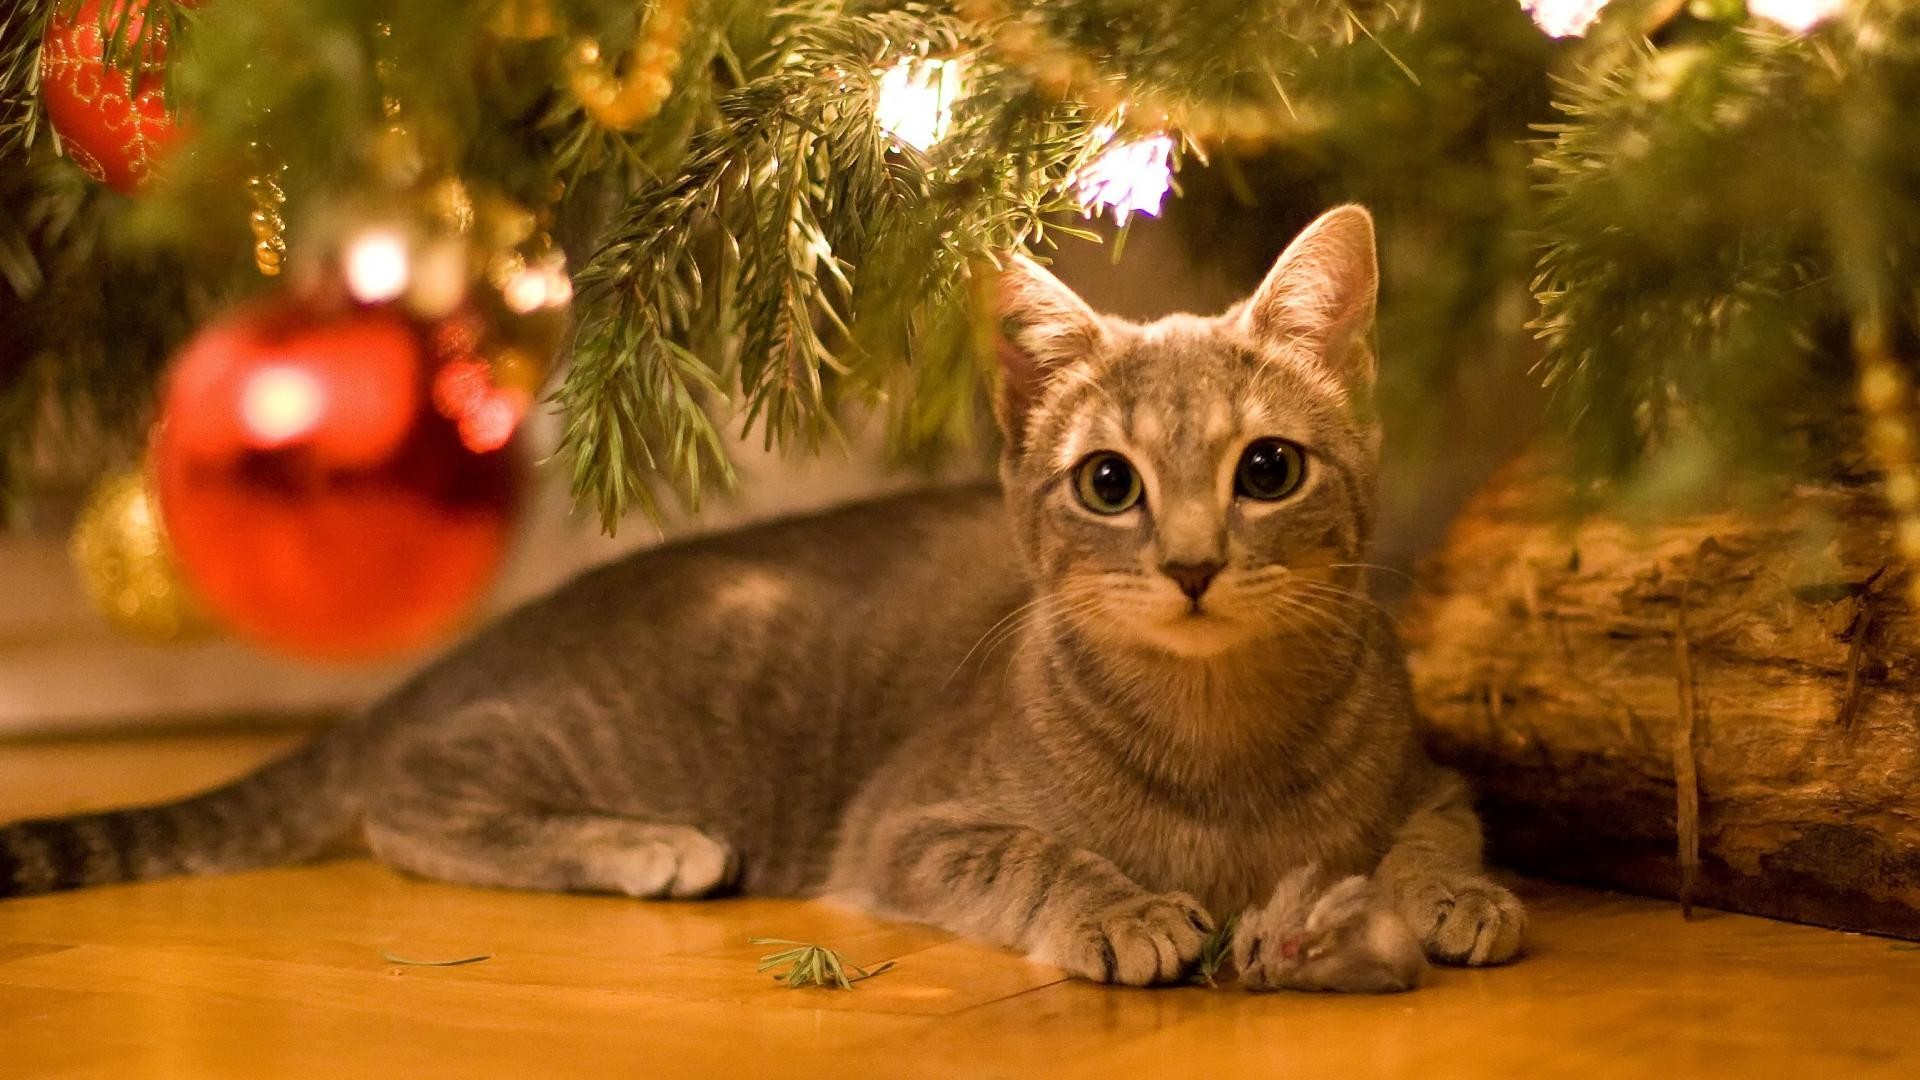 christmas wallpaper with cats 55 images